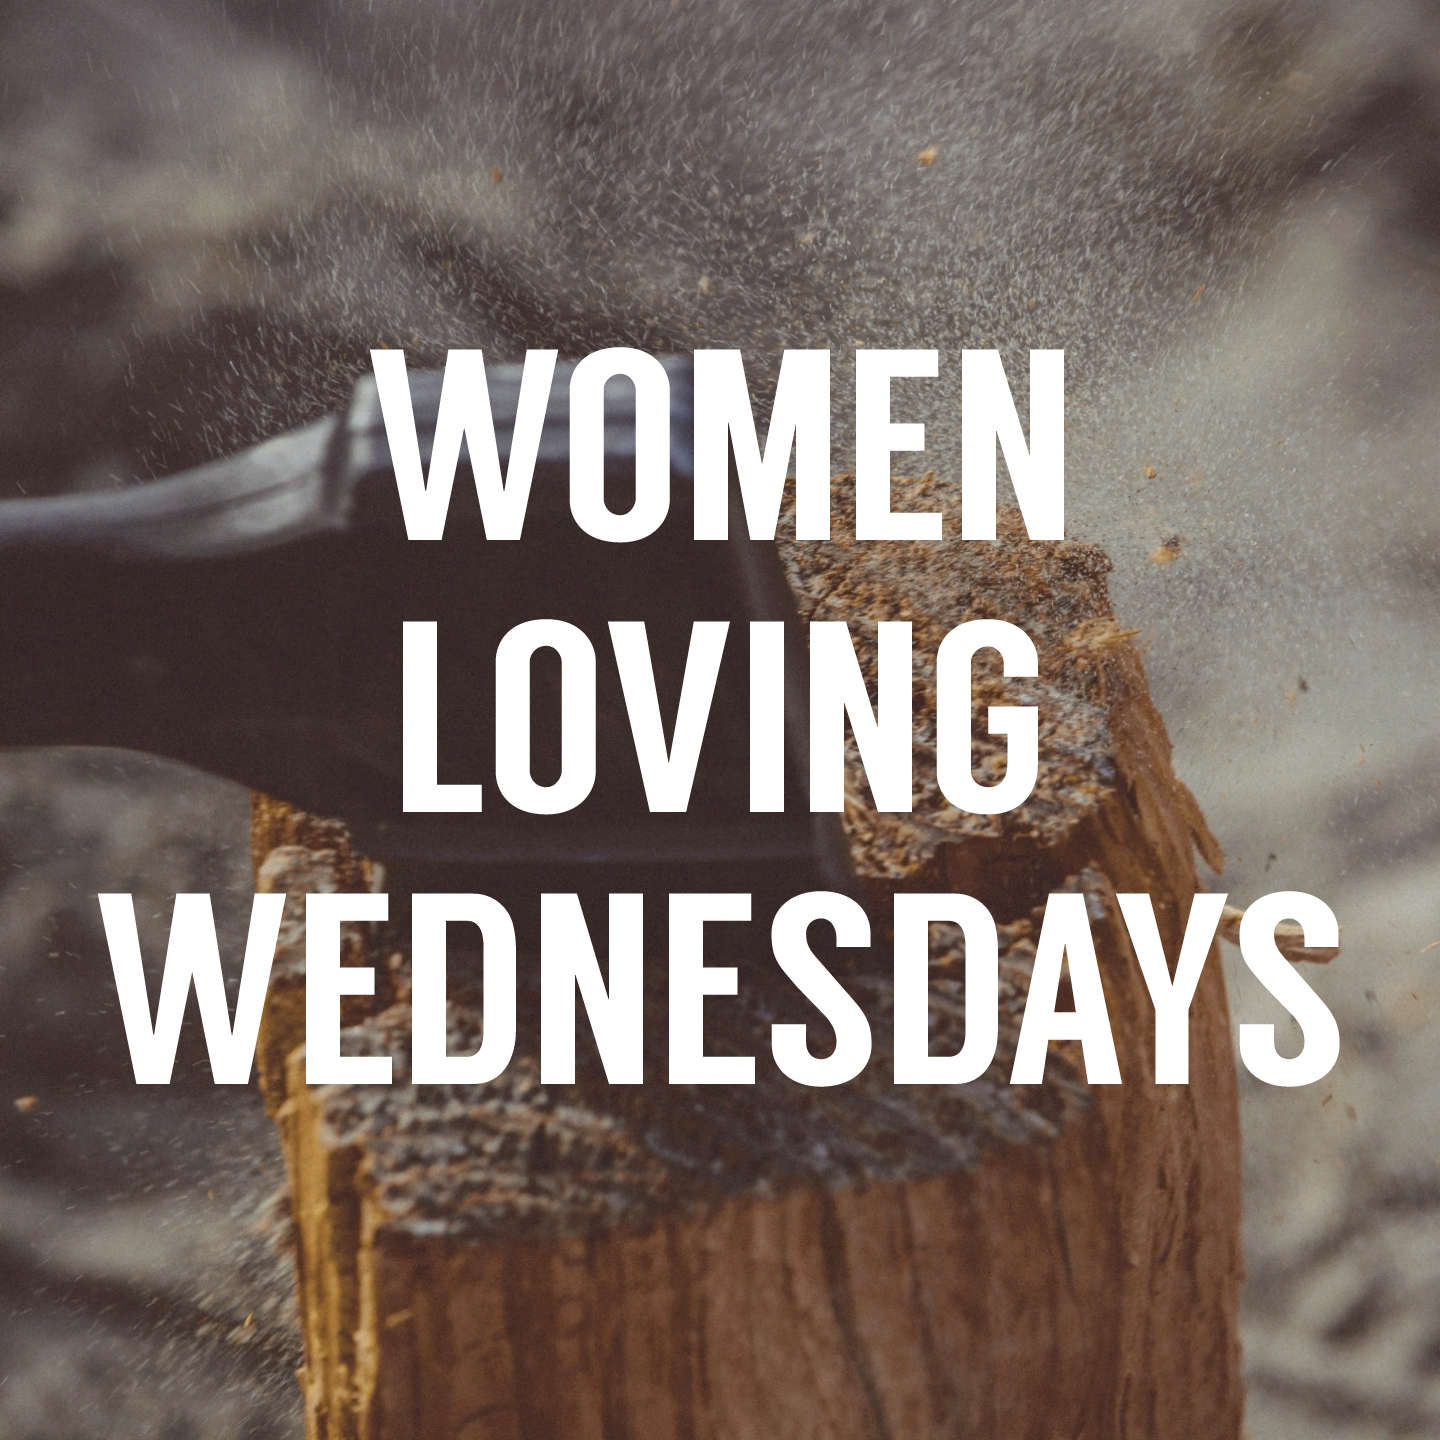 Women Loving Wednesdays